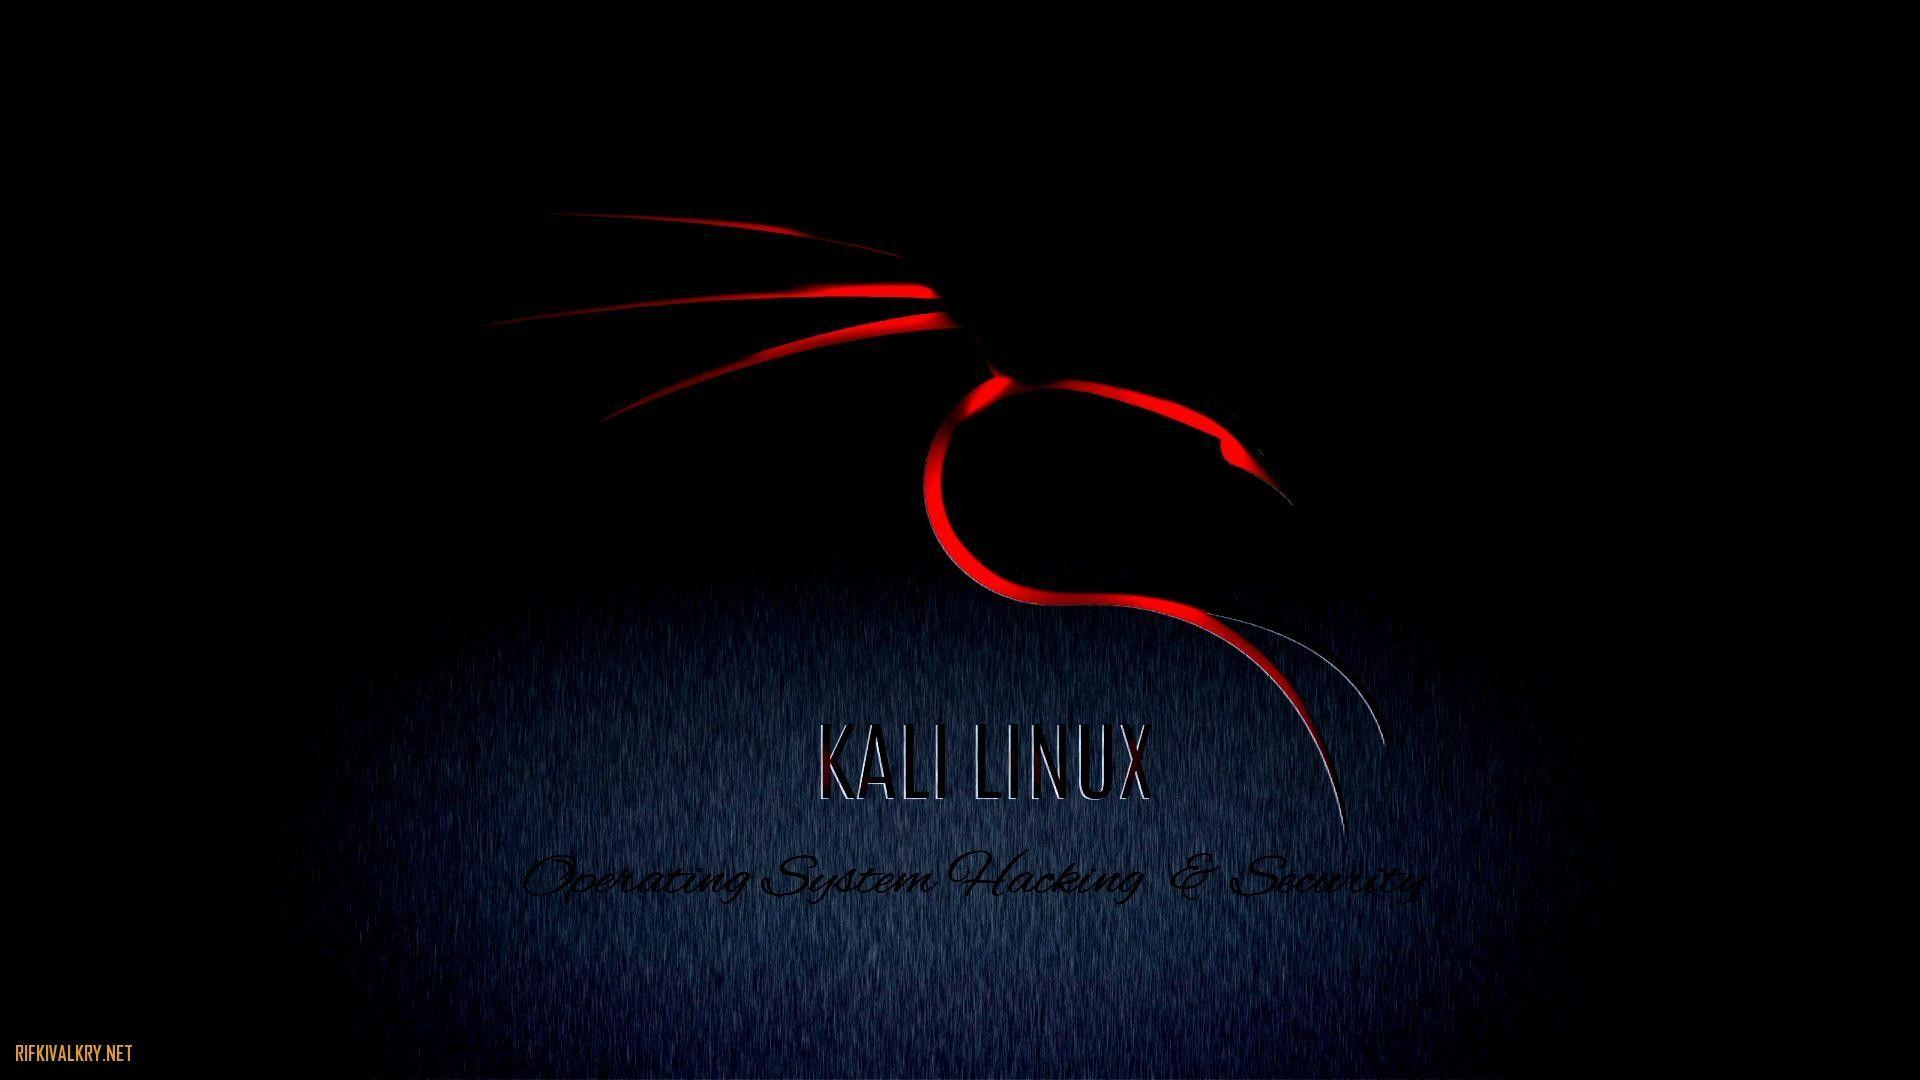 Kali Linux Wallpapers 1920x1080 - Wallpaper Cave